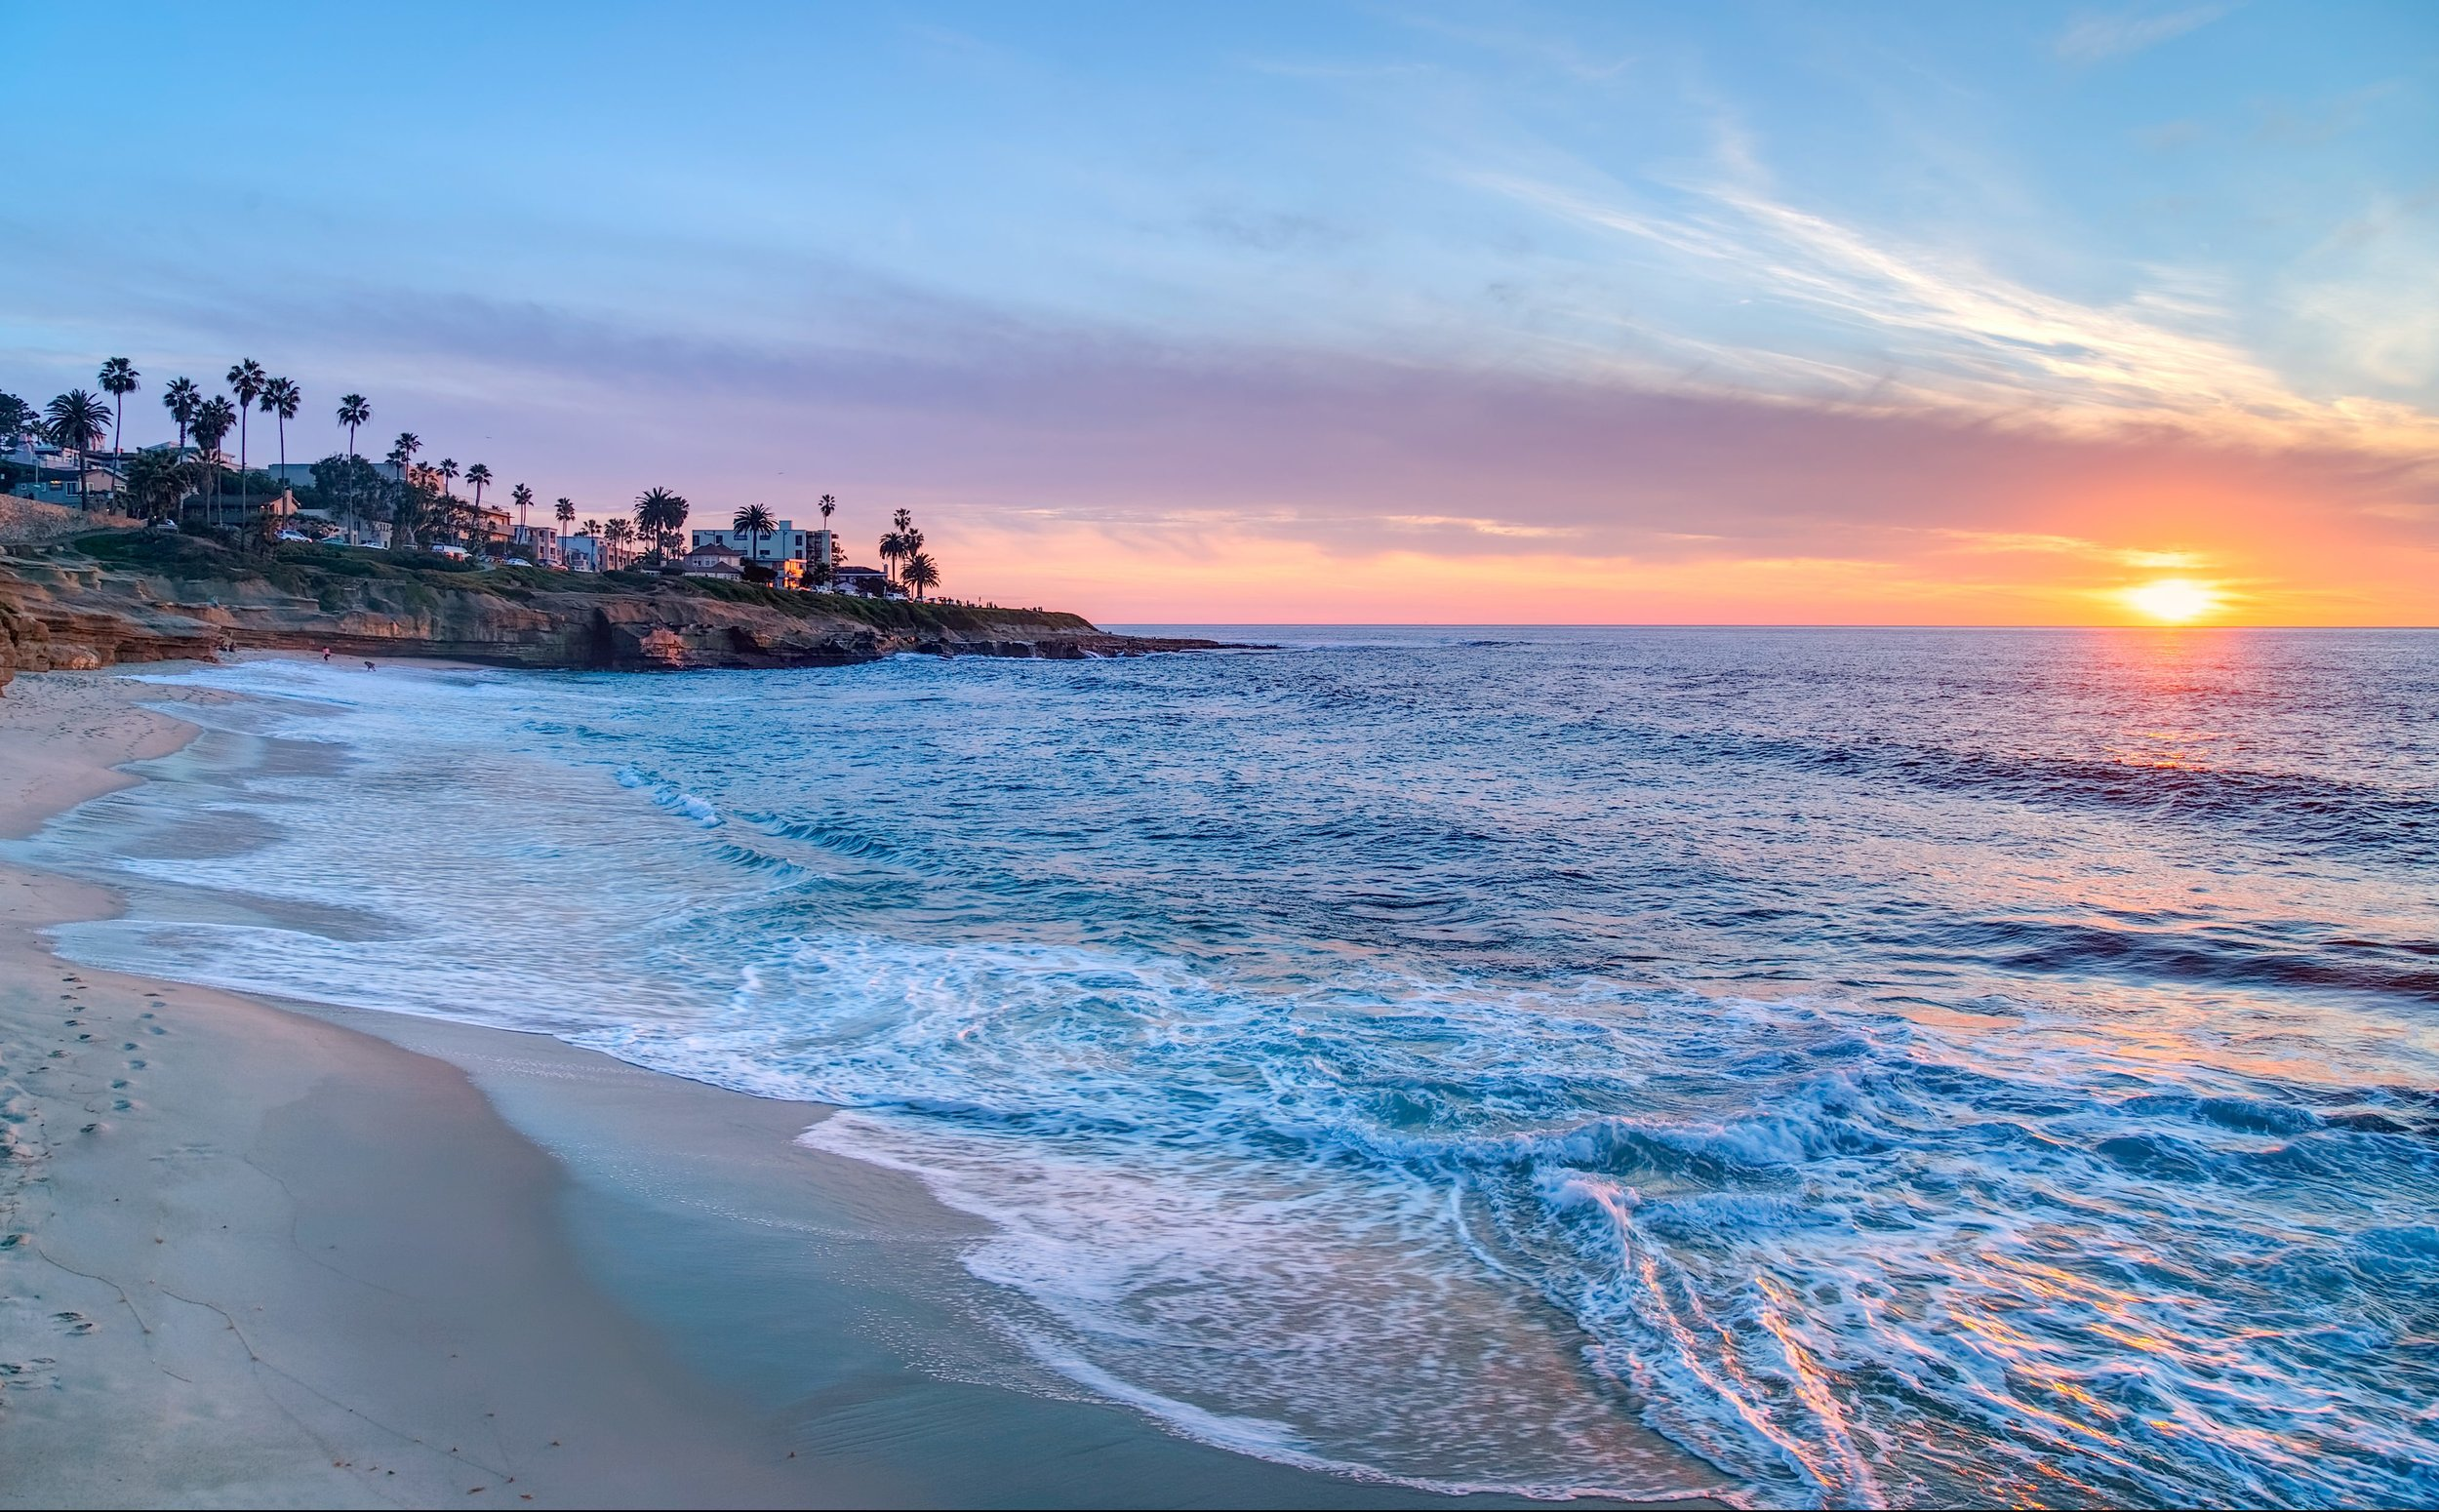 bigs-Sunset-at-Wipeout-Beach-La-Jolla-California-e1482282928458.jpg